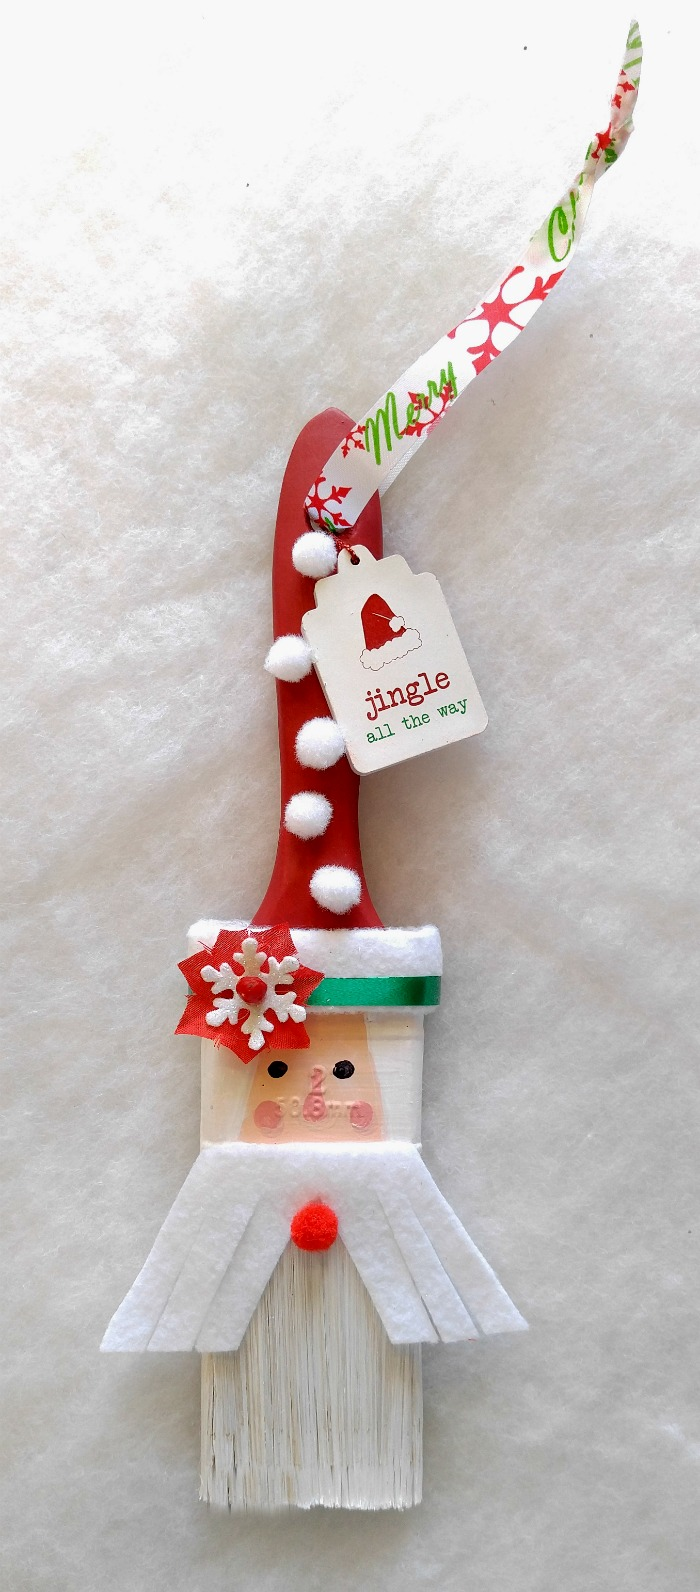 This Santa Claus Paintbrush decoration is whimsical and fun to make and will look cute on a Christmas tree or as a wall hanging.